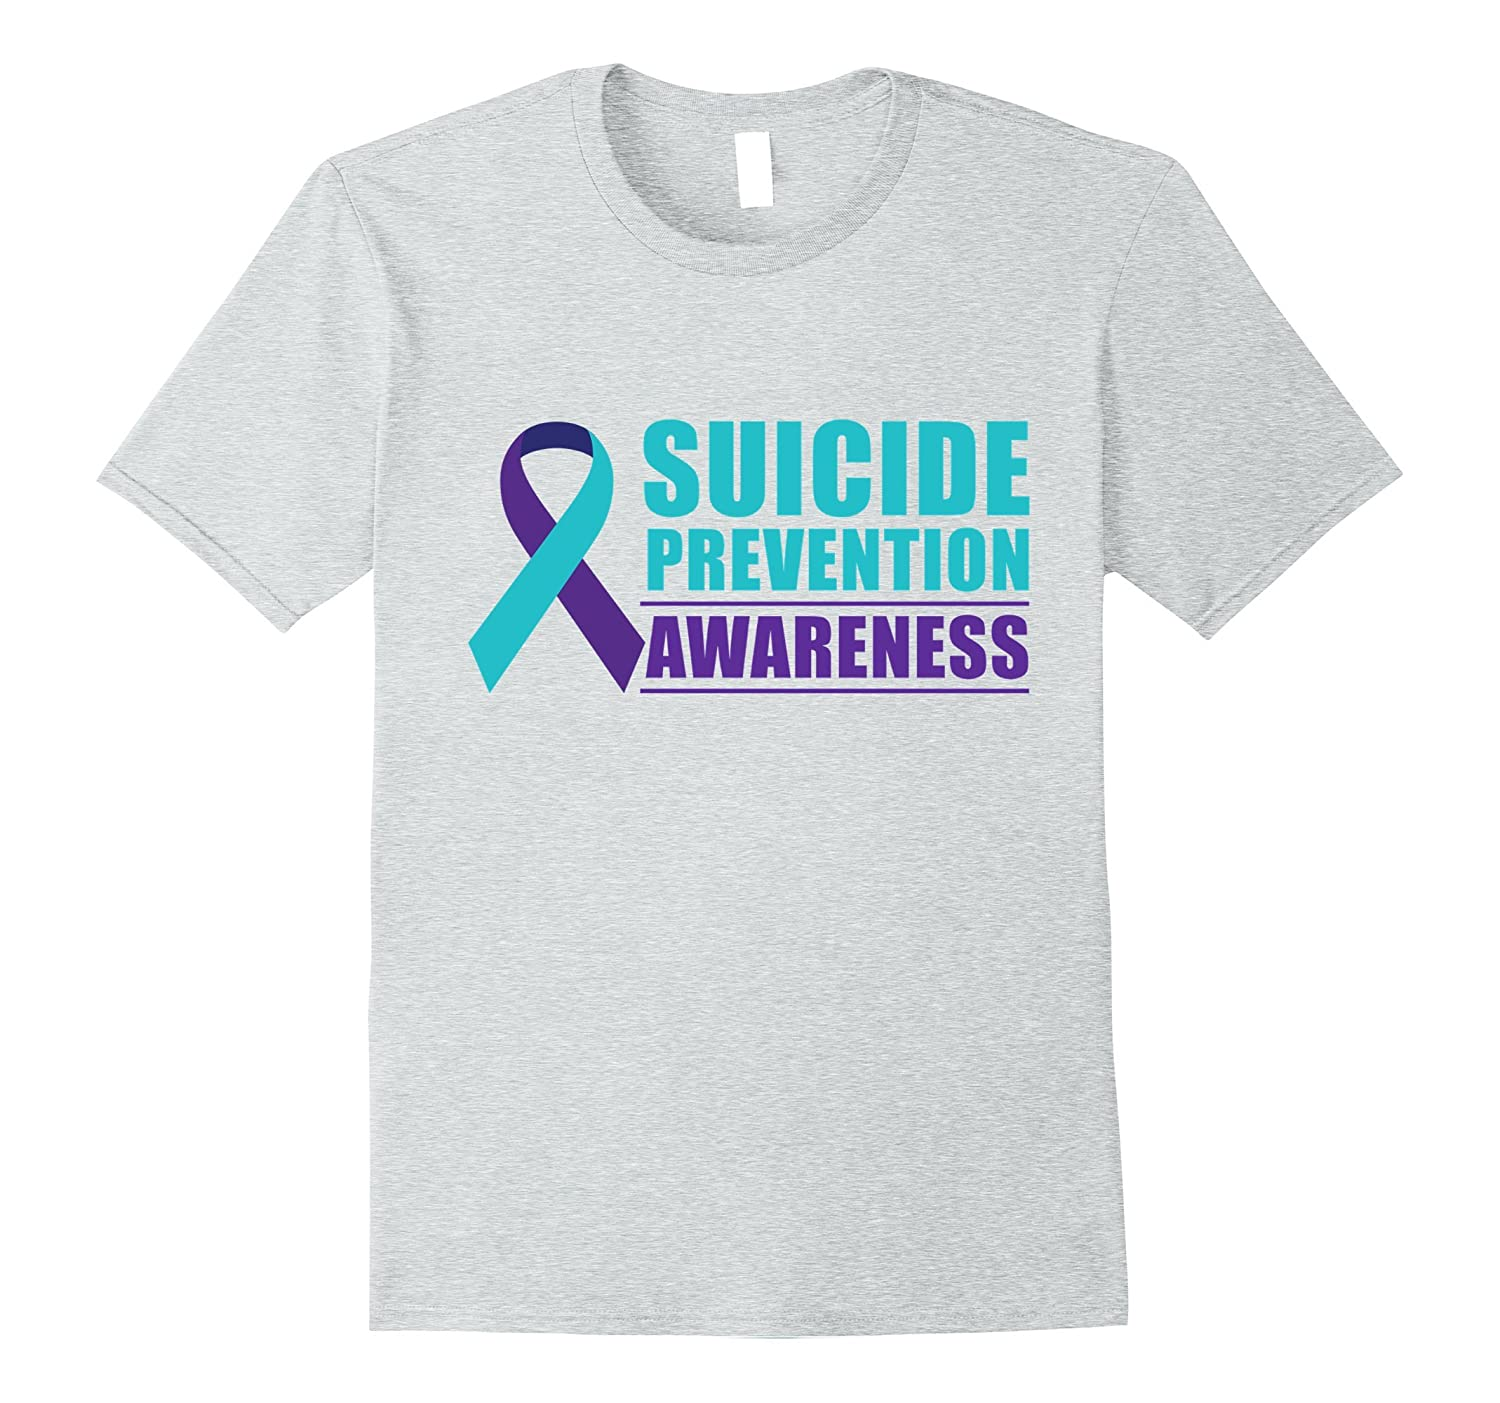 6d9175cfb Suicide Prevention Awareness T Shirt Funny Gift Tee-ANZ ⋆ Anztshirt